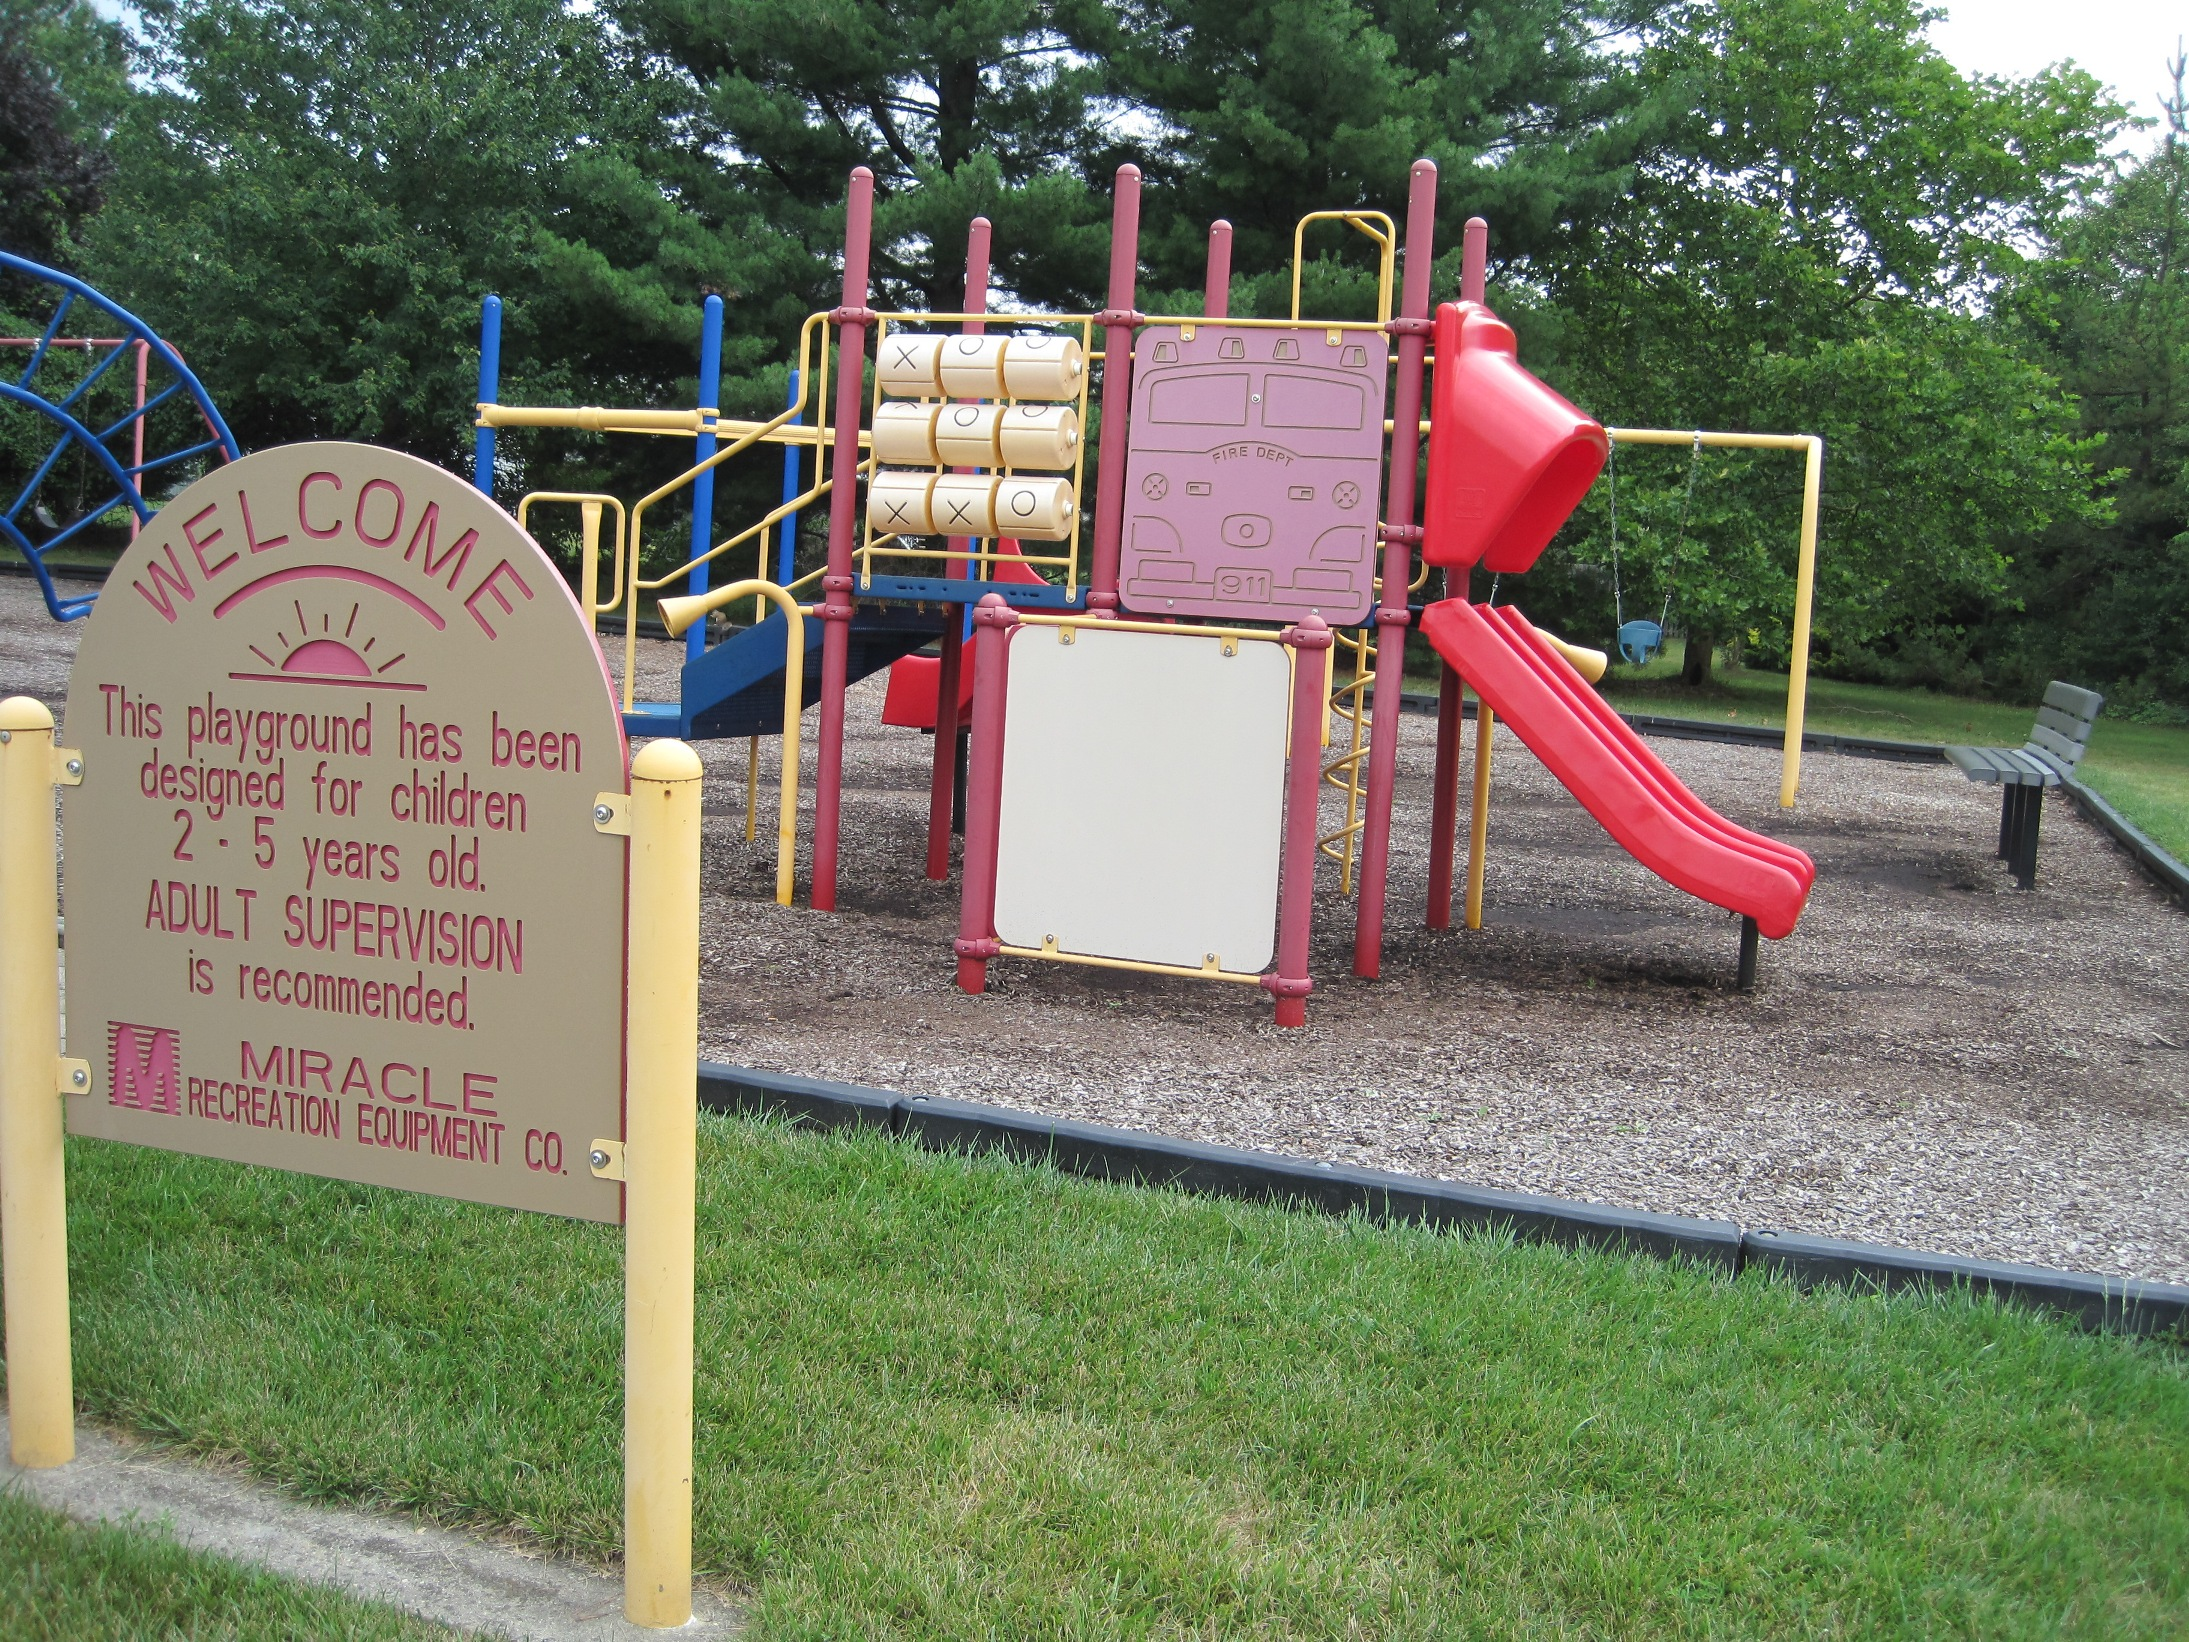 Blacksox Park Playground